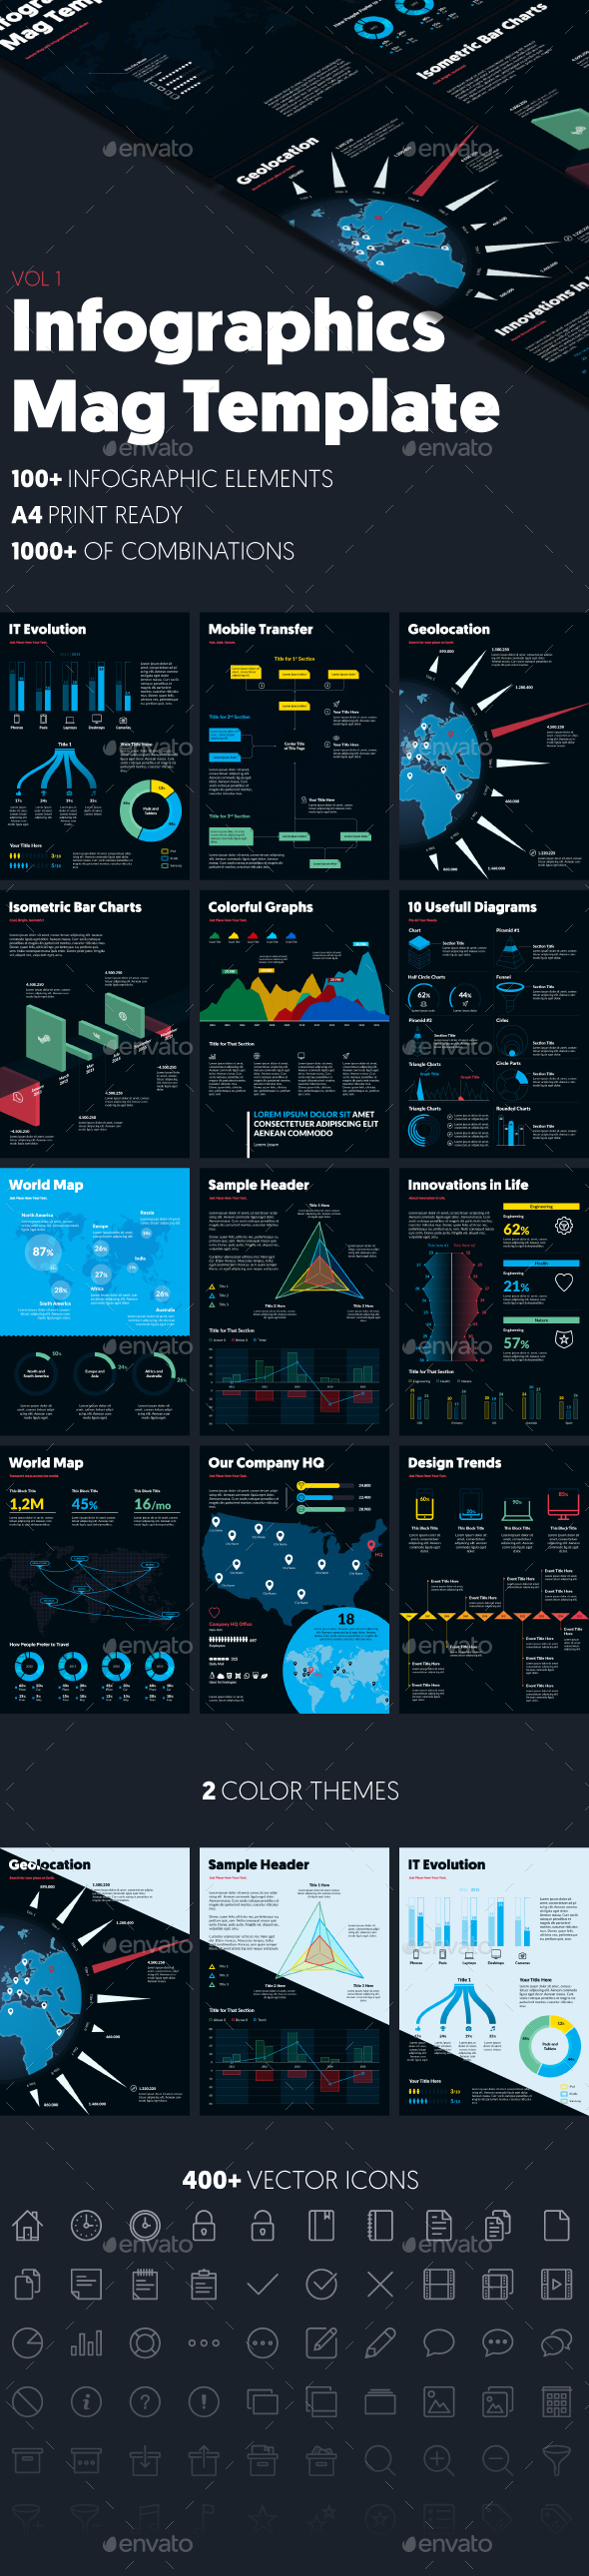 Infographics Mag Template (vol. 1) - Infographics